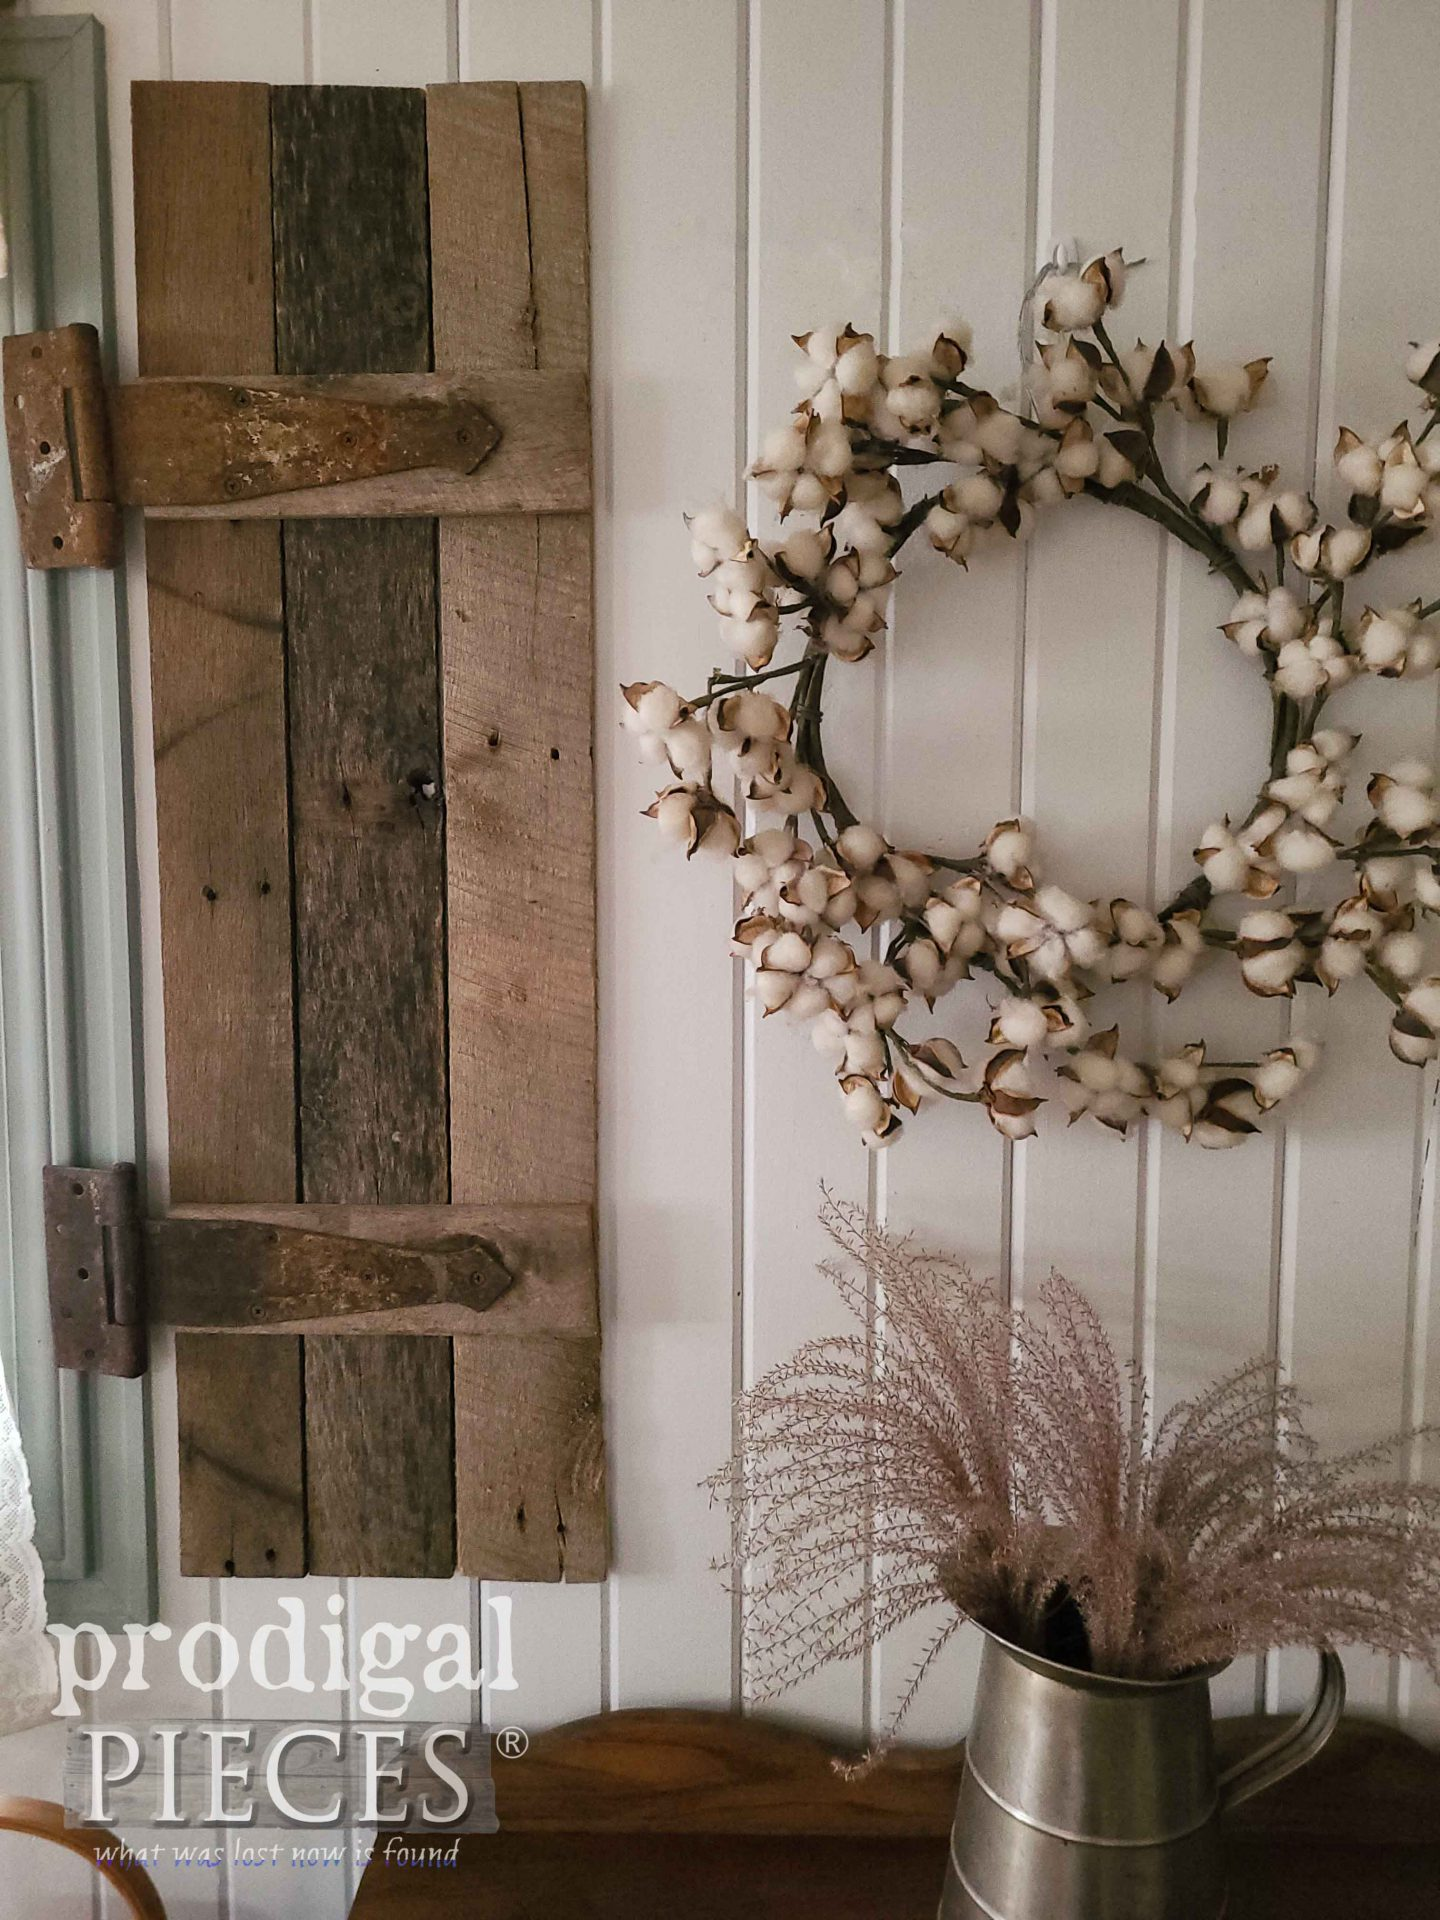 Rustic Farmhouse Style Decor by Larissa of Prodigal Pieces | prodigalpieces.com #prodigalpieces #farmhouse #homedecor #style #home